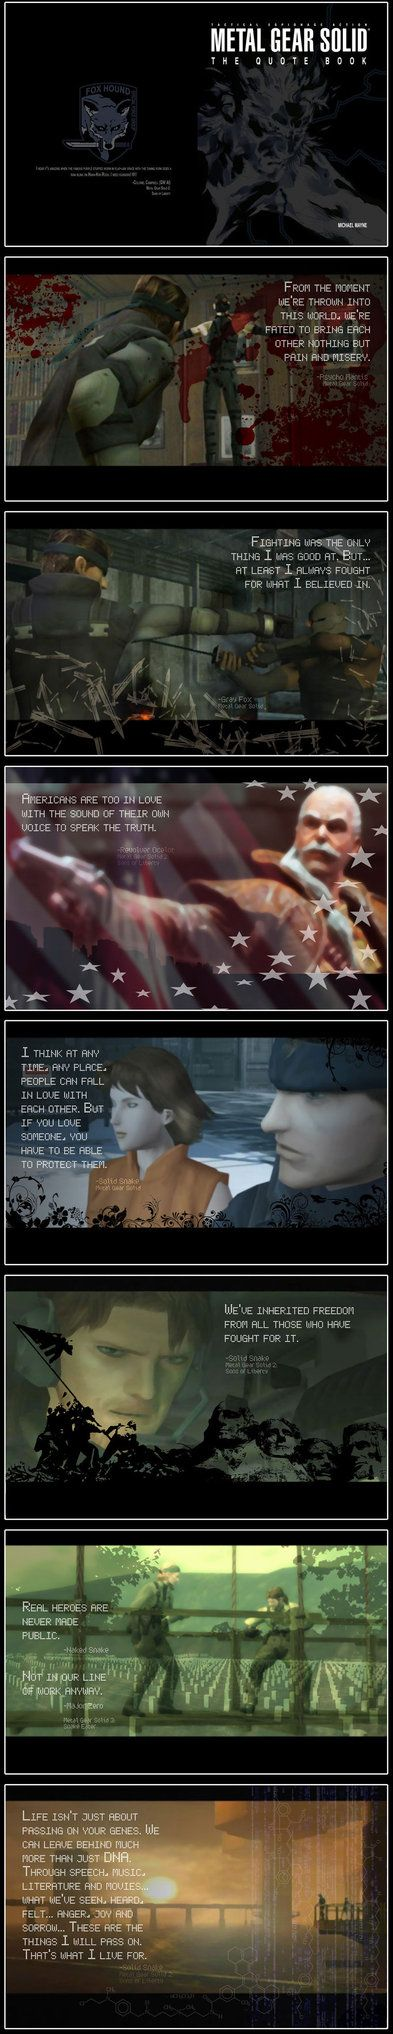 Metal Gear Solid - Quote Book by *MichaelMayne